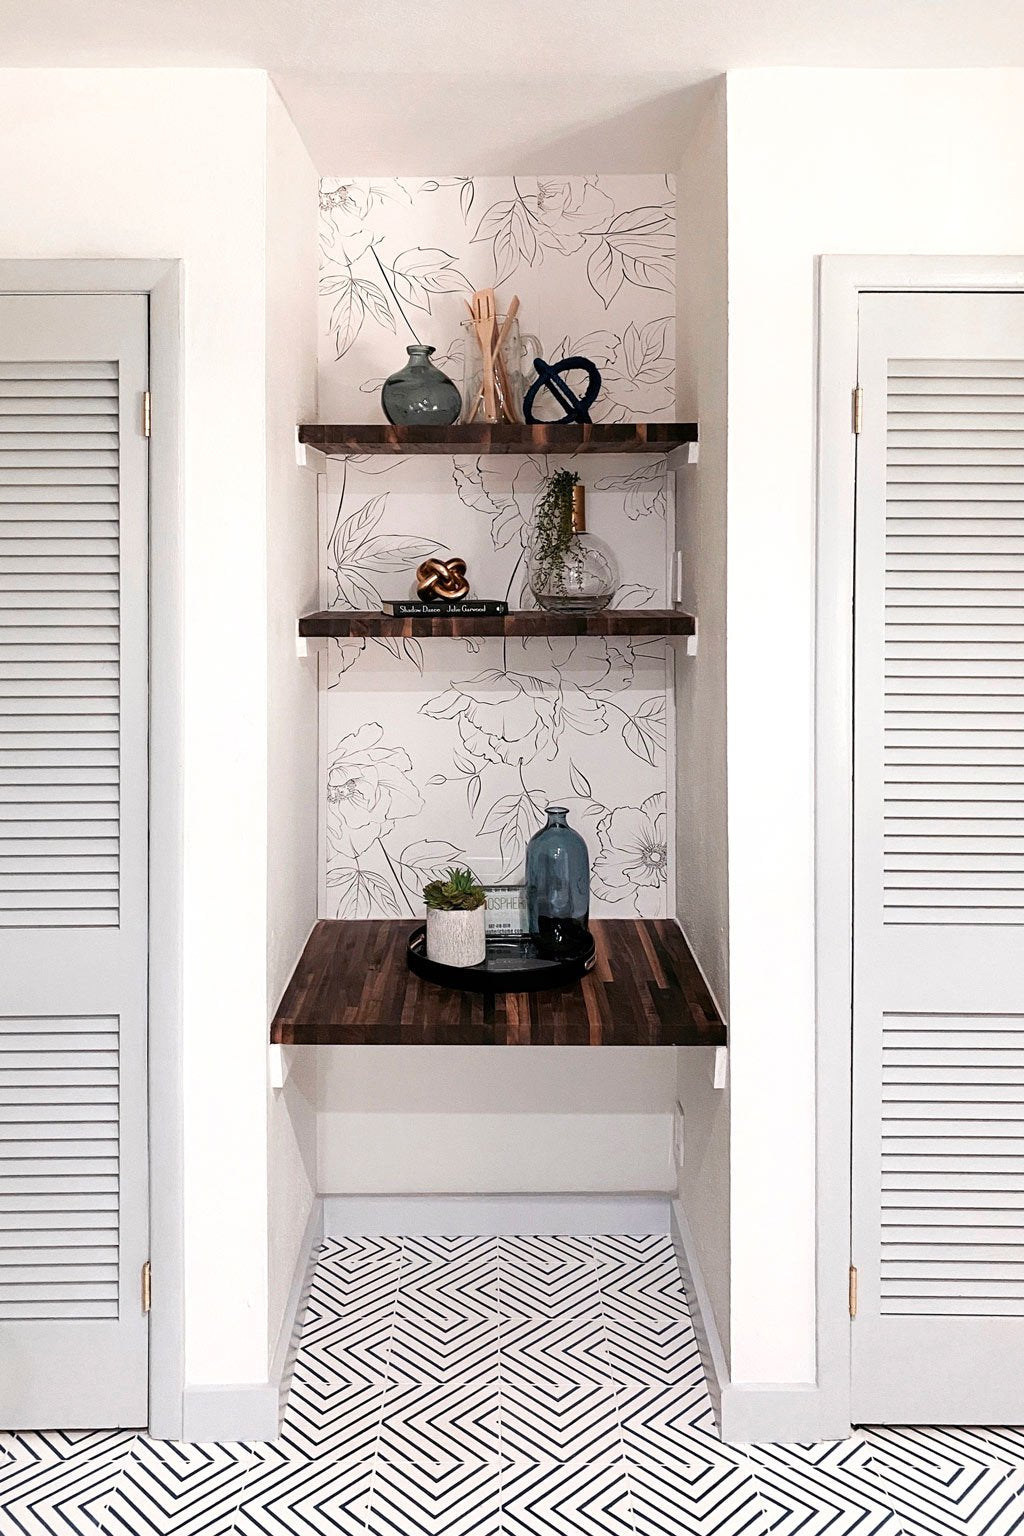 Dining room book shelf nook with floral removable wallpaper feature wall